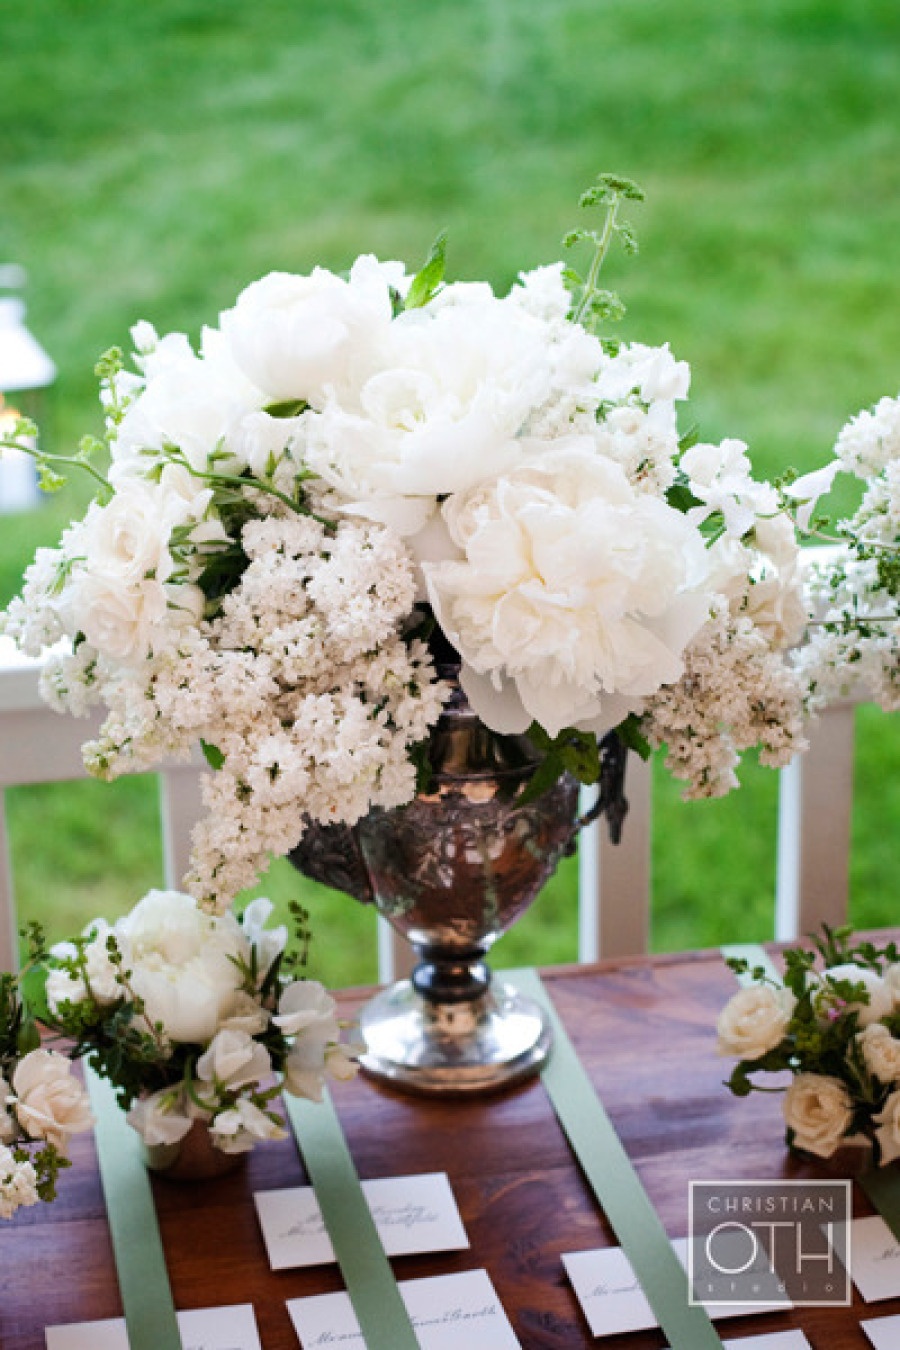 wedding-centerpiece-ideas-2-06102014nz